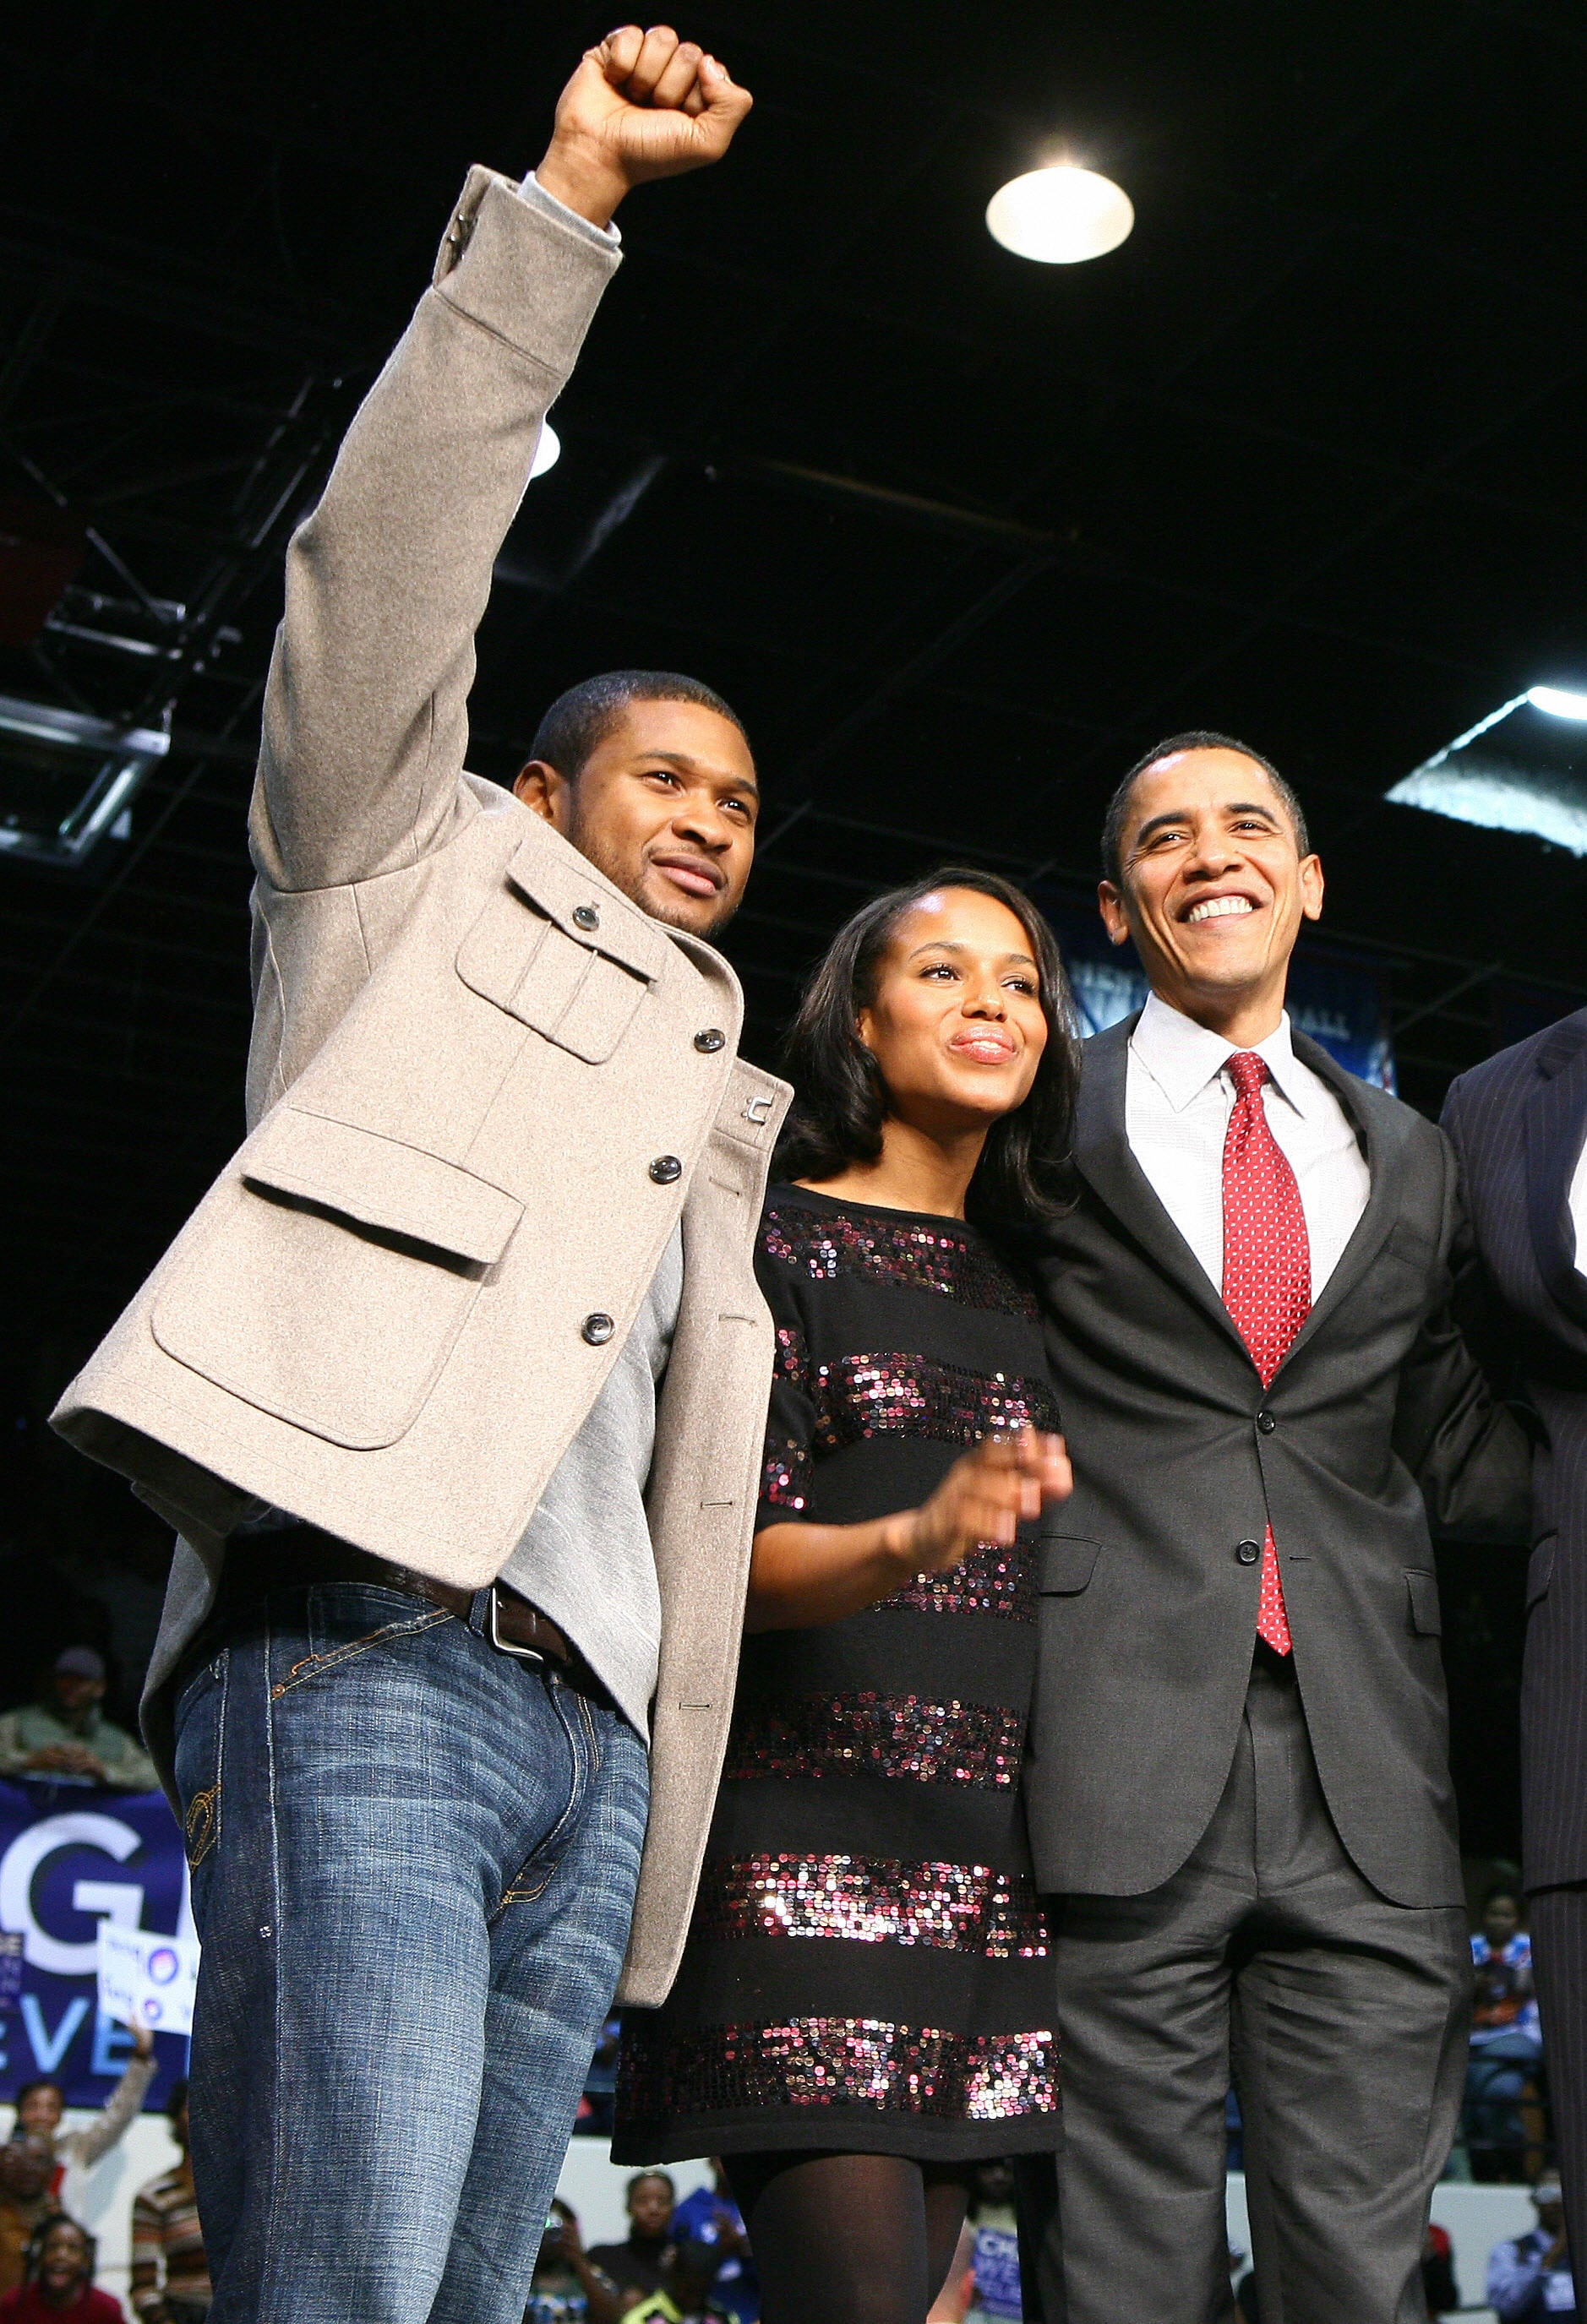 Usher and Kerry Washington campaign for President Obama during a rally in South Carolina. January, 2008.